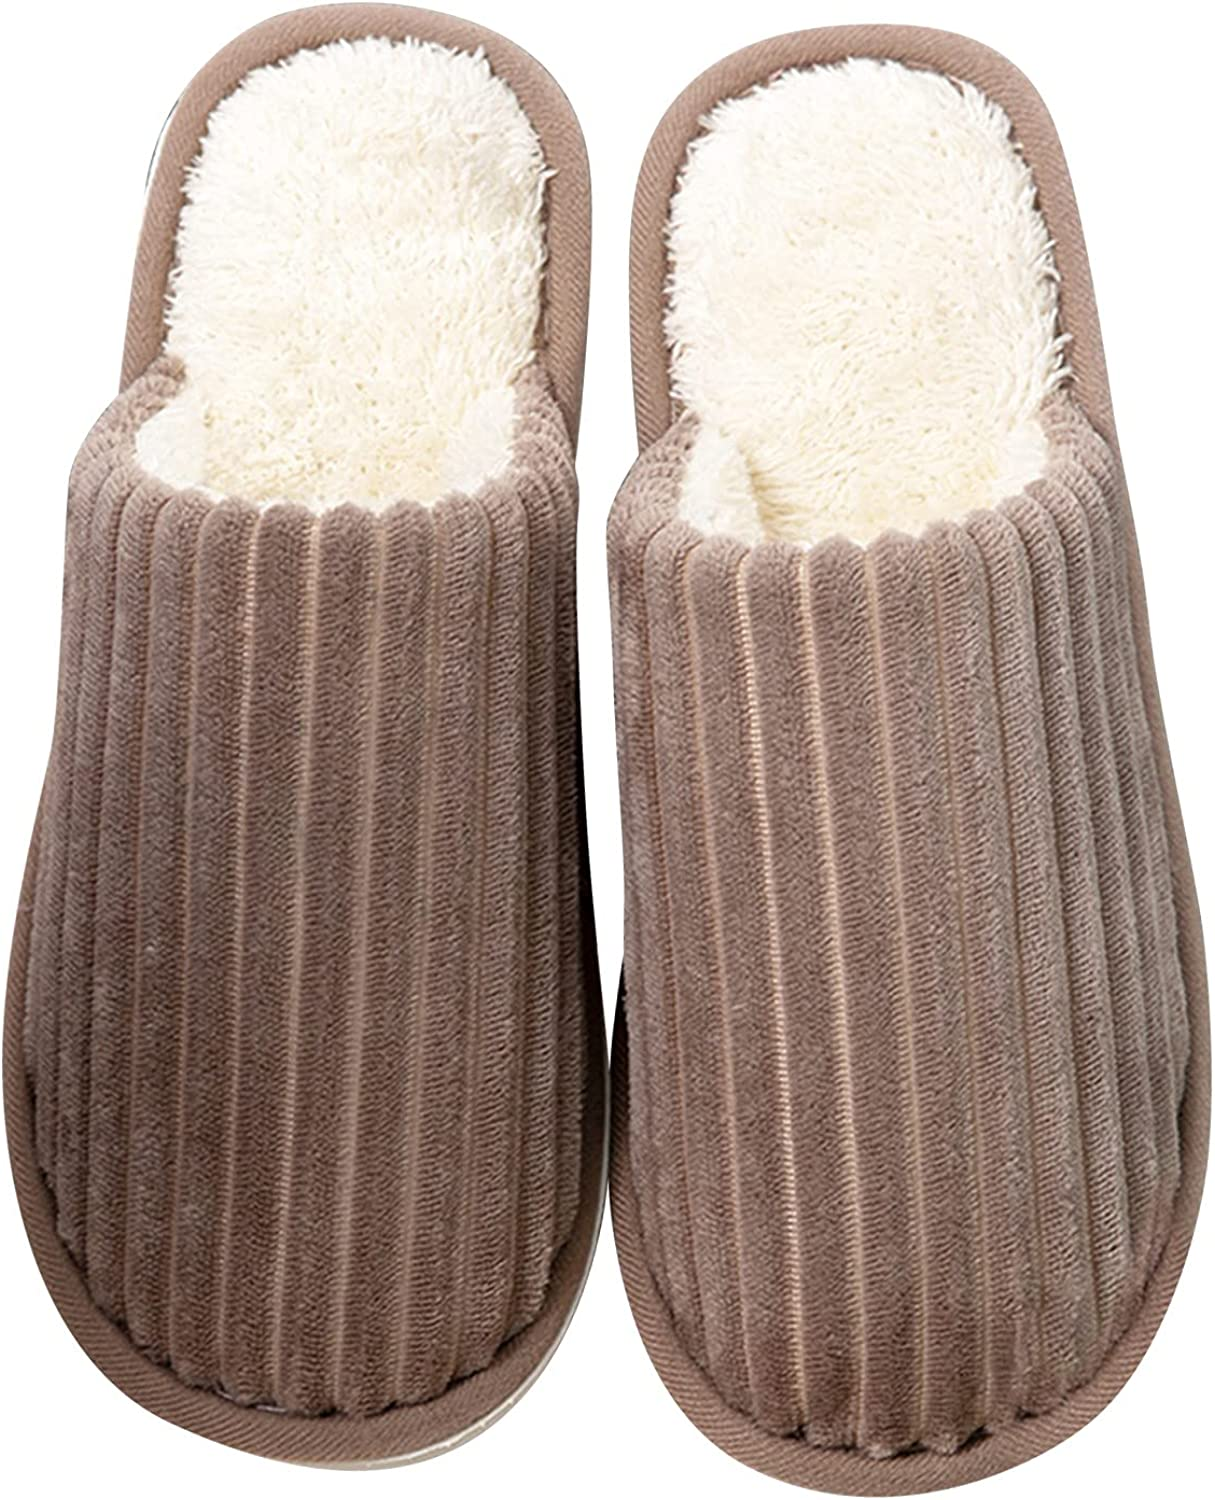 Hunauoo Super beauty product restock quality top Slippers for Women Soft Cotton S Warm Household Max 64% OFF